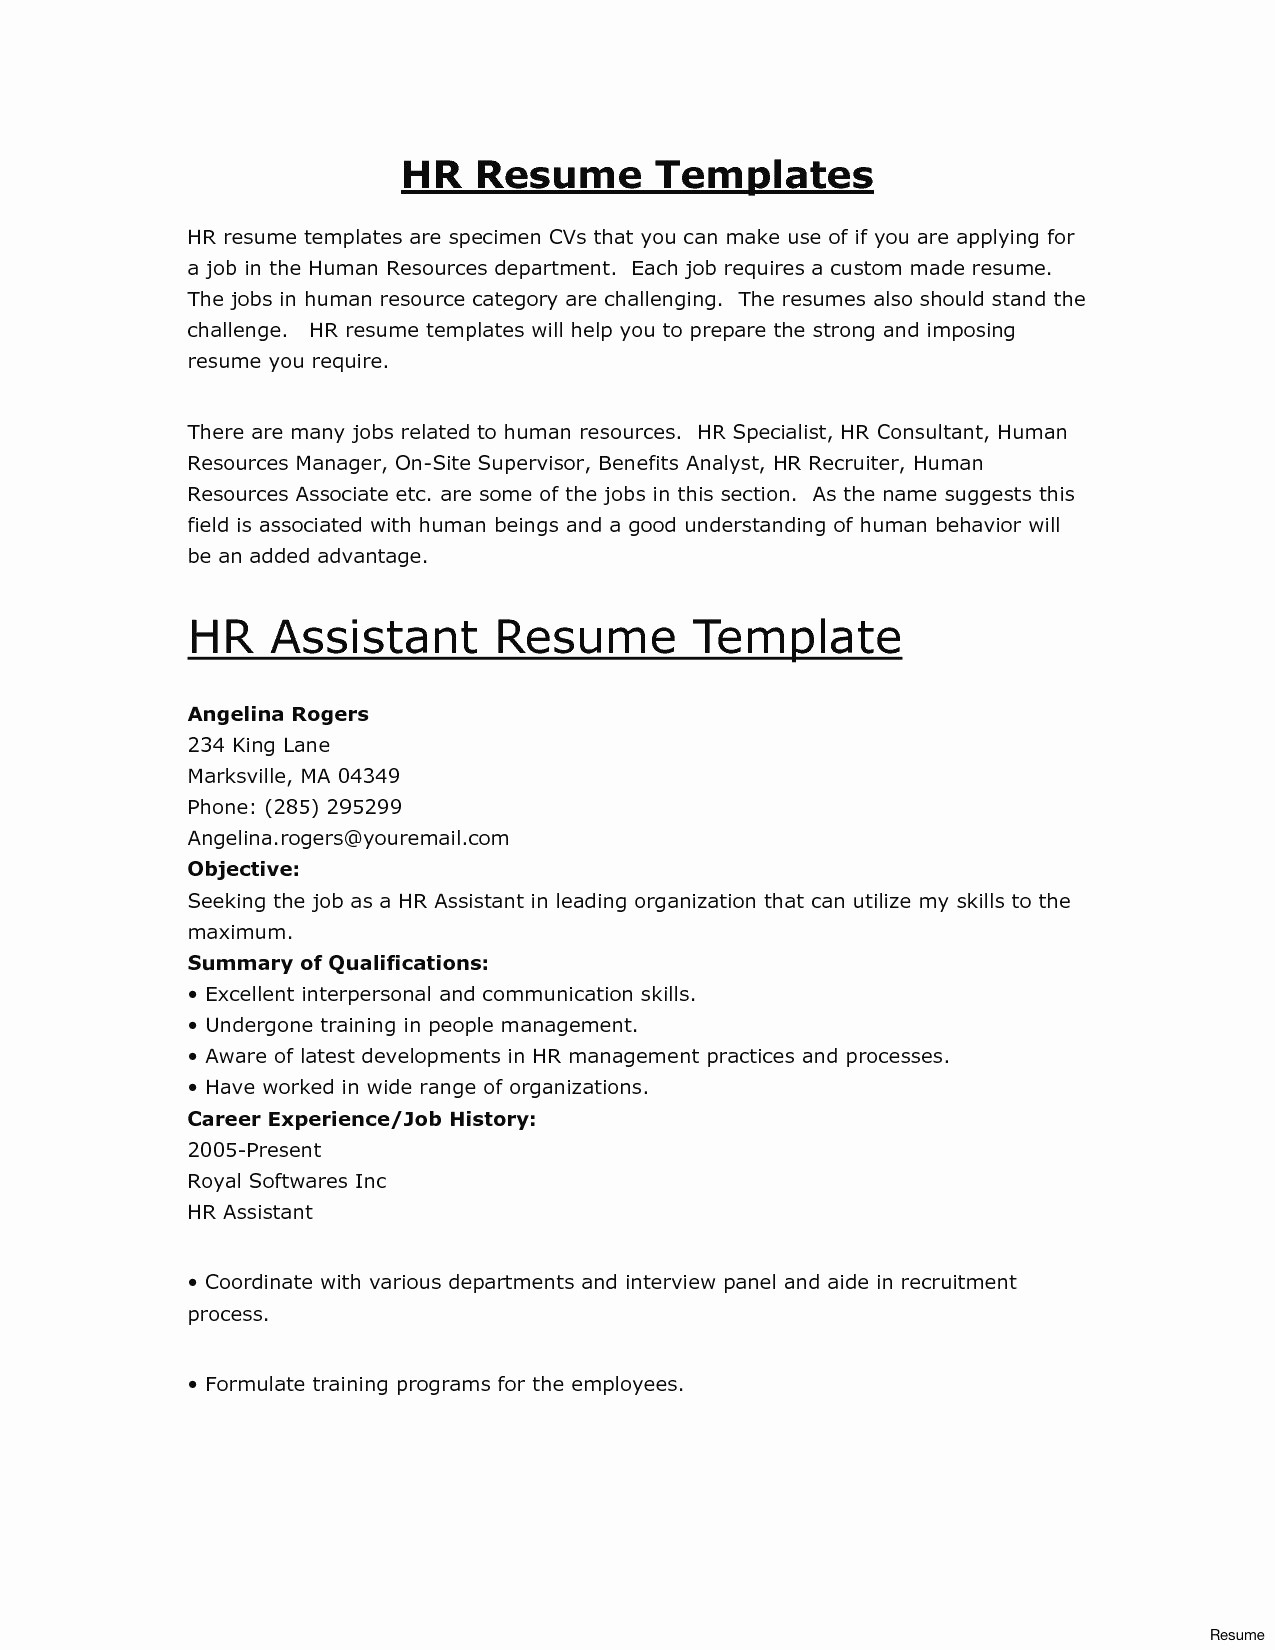 Formal Business Letter Template - Beautiful formal Business Letter Template Word